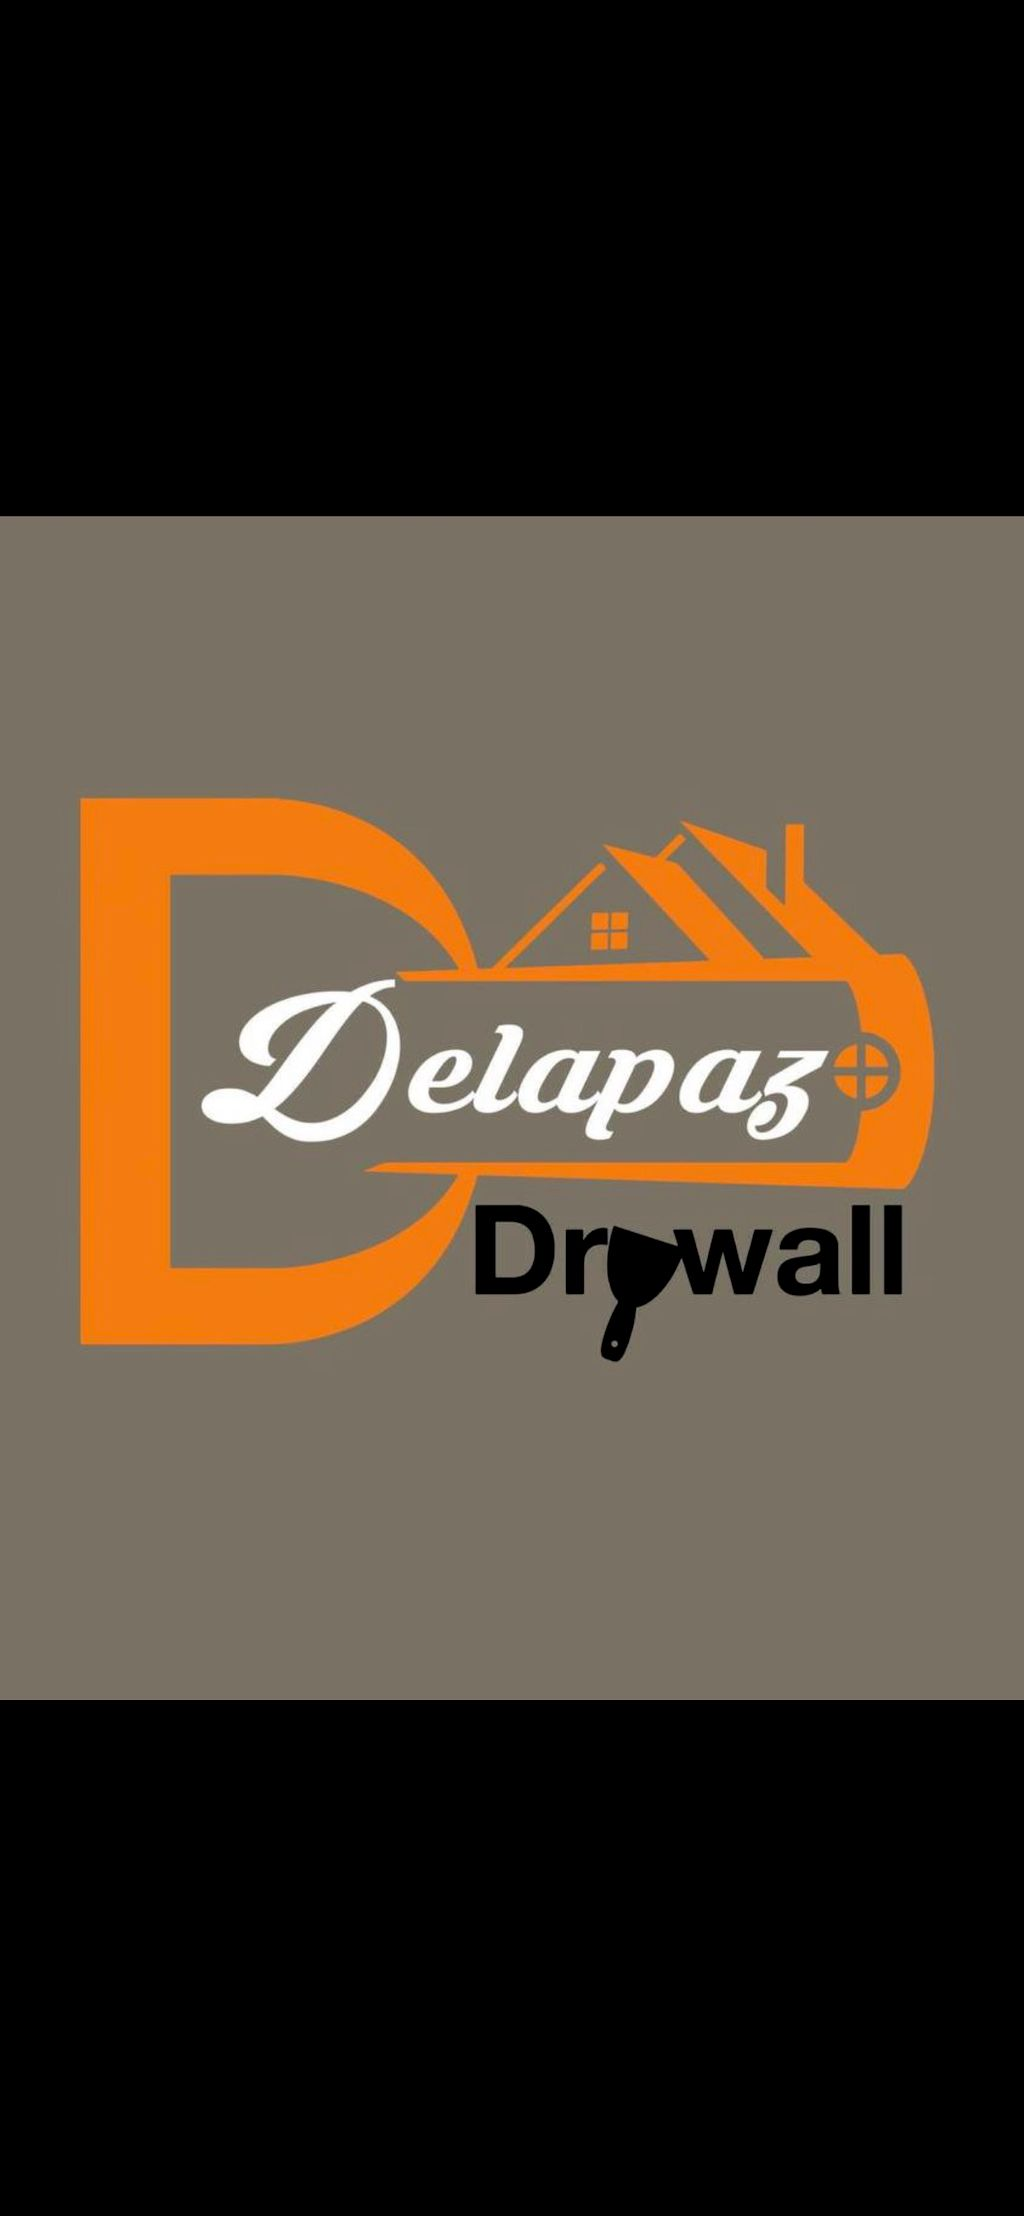 Delapaz Drywall Clean Up